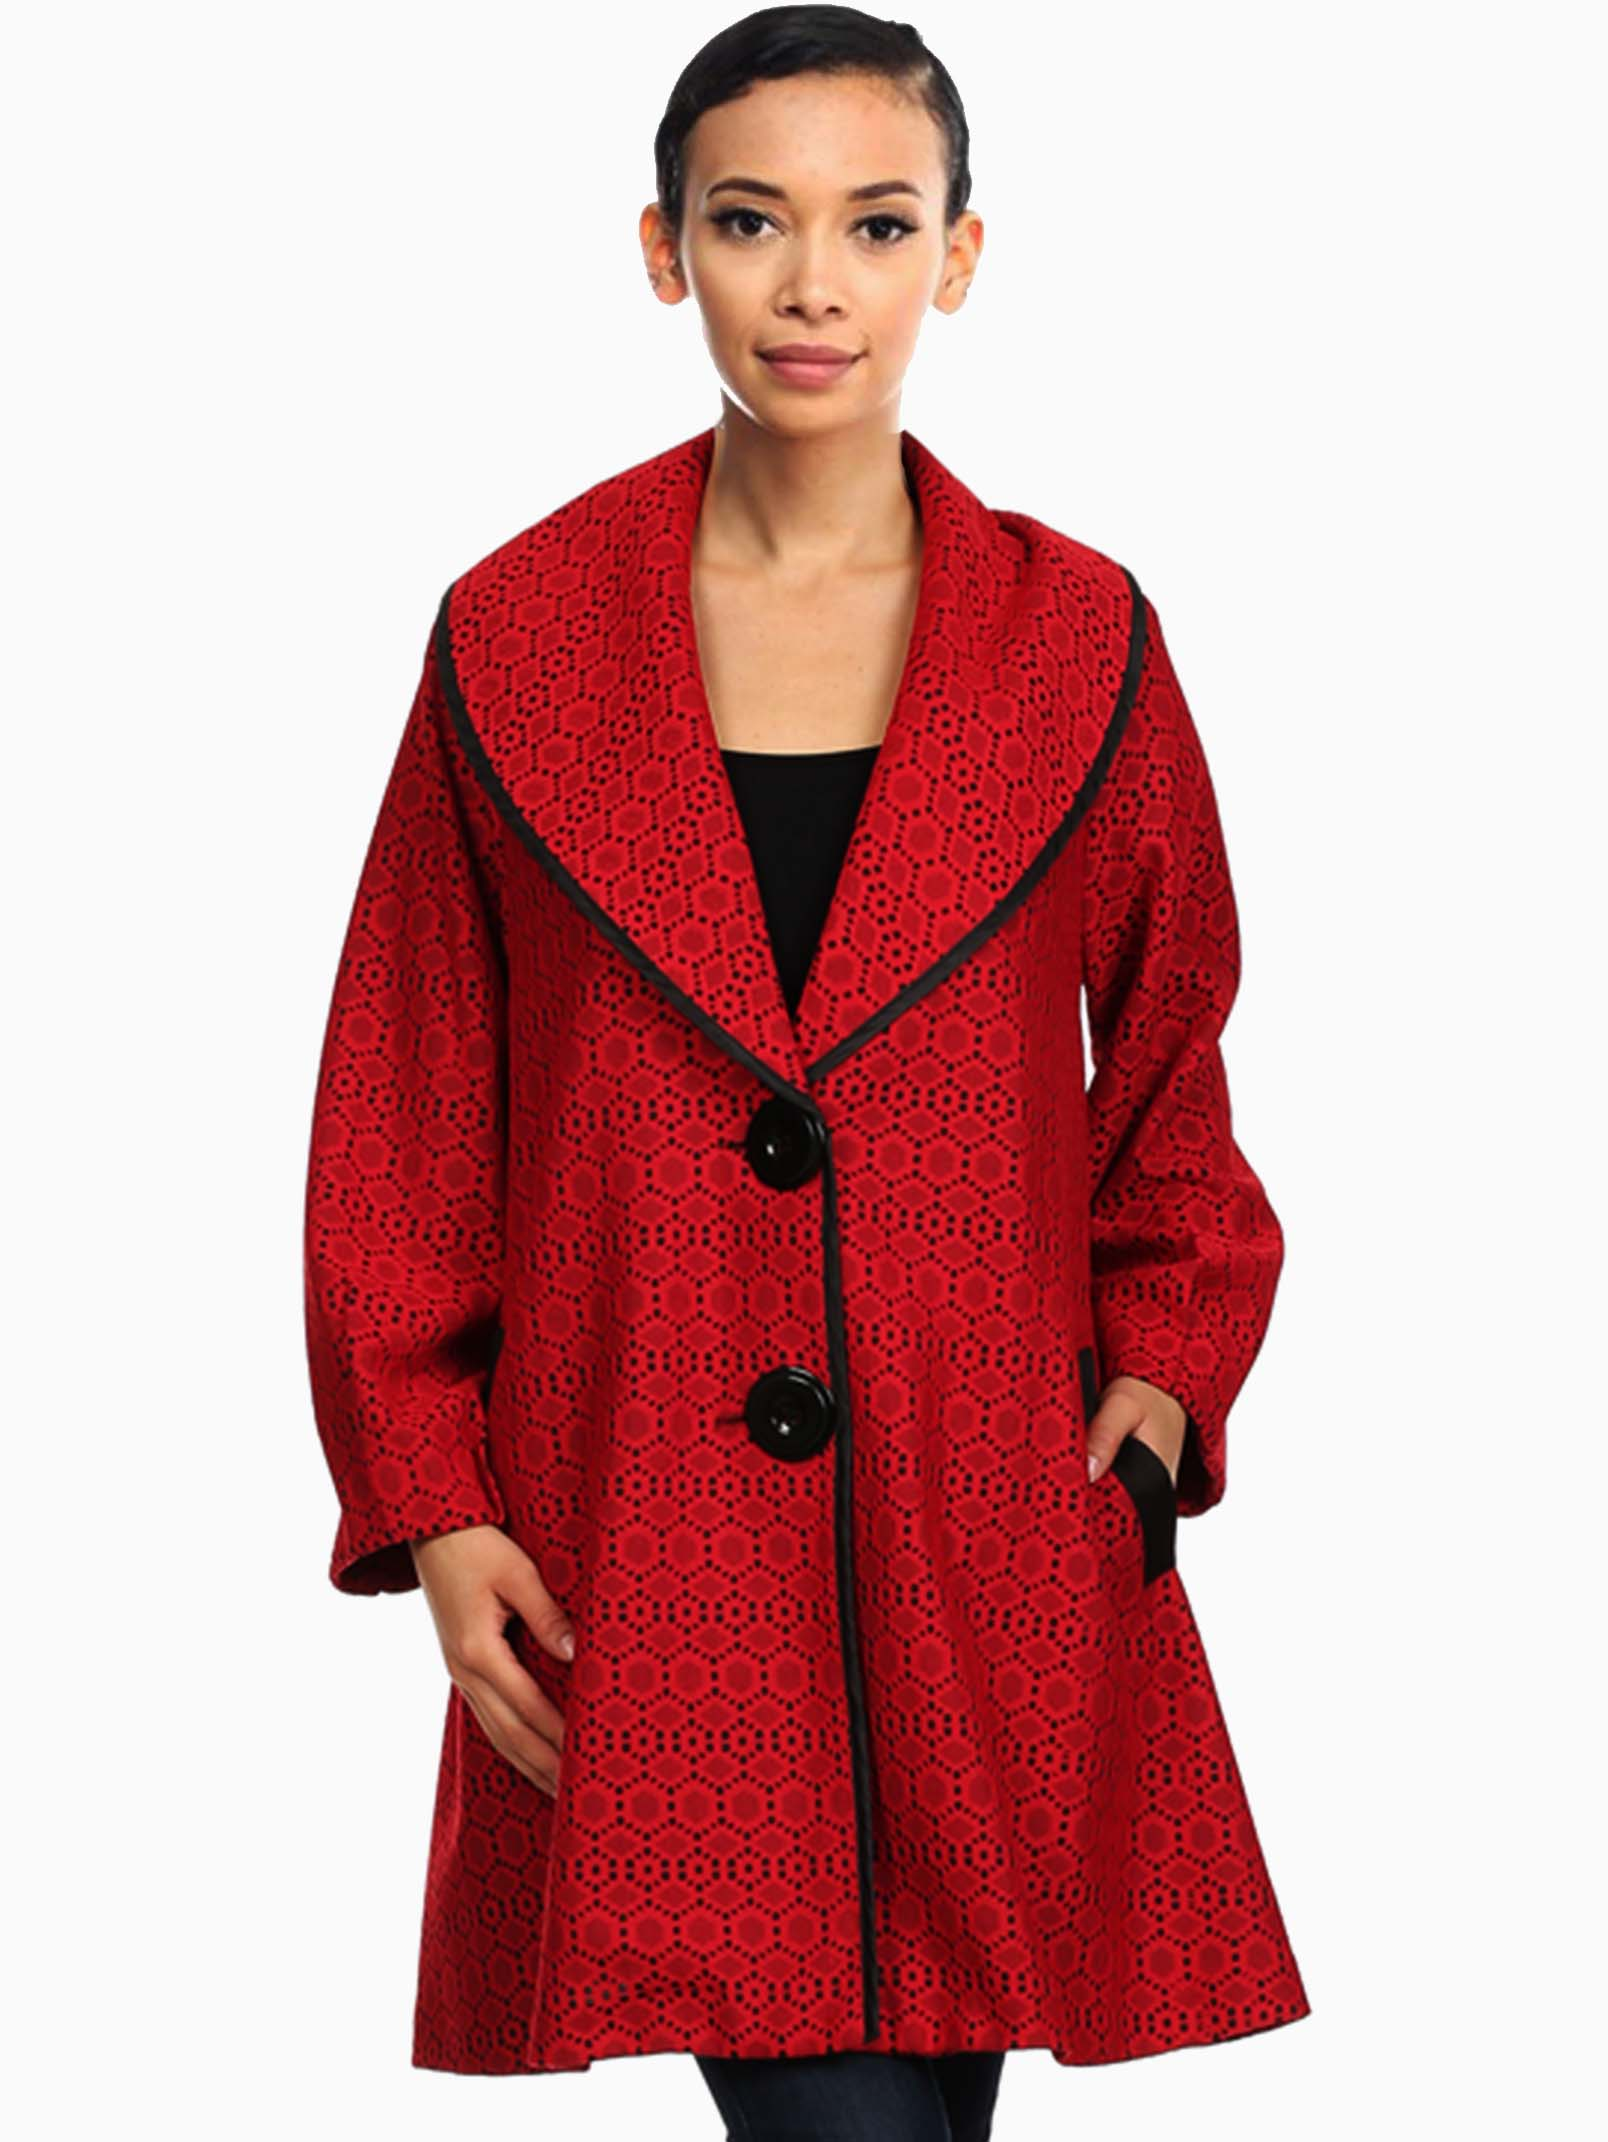 Red Oversized Crochet Lace Coat - ModishOnline.com